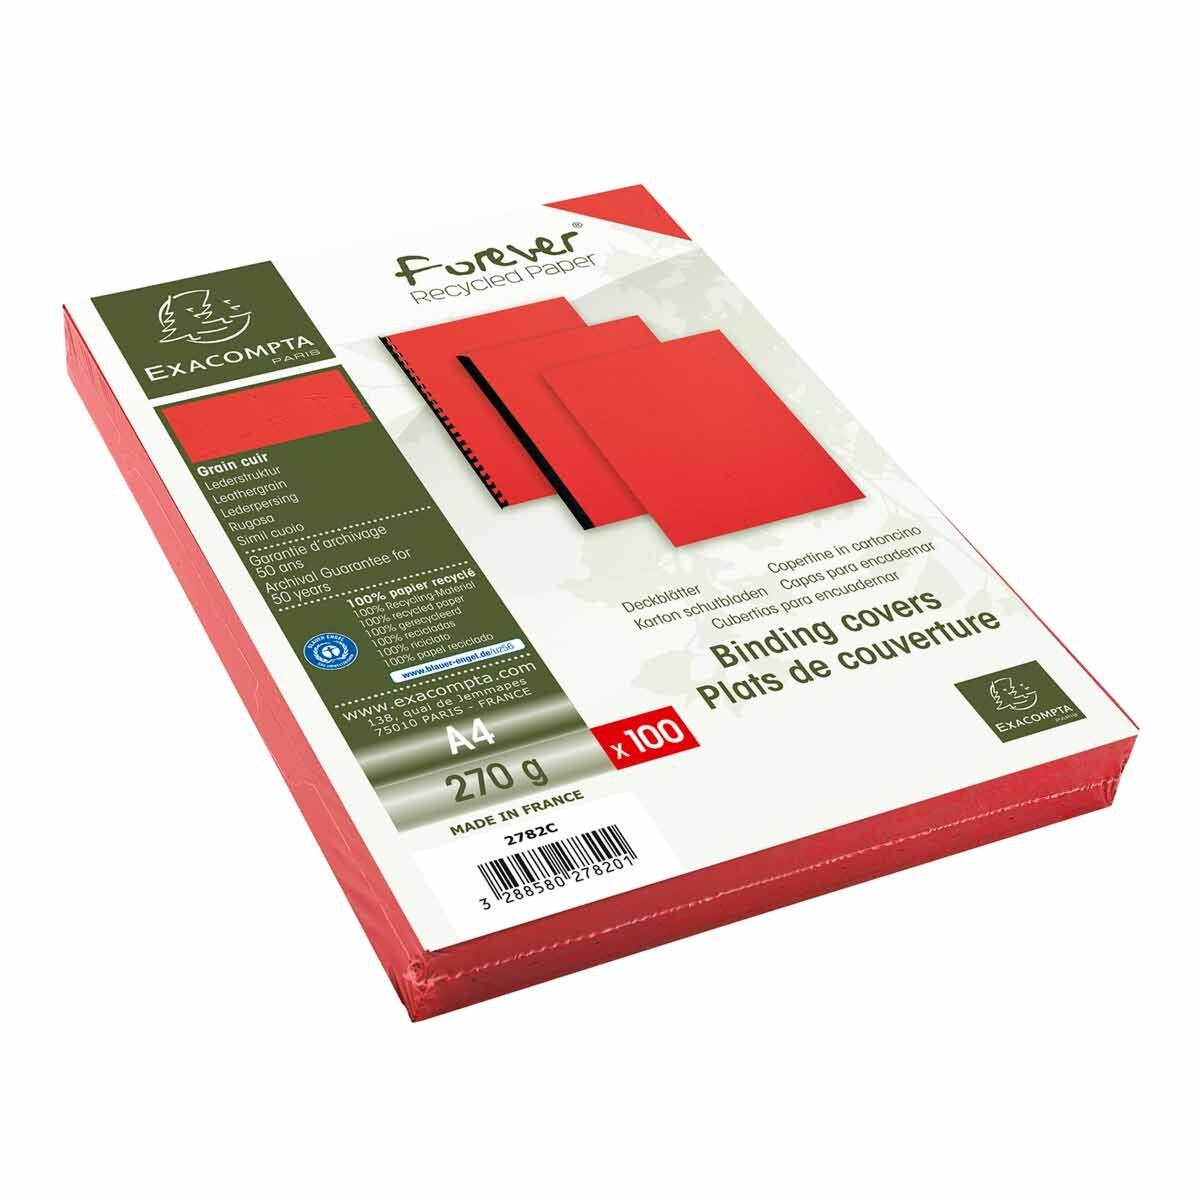 Exacompta Forever Leather Grain Covers A4 Pack of 400 Red